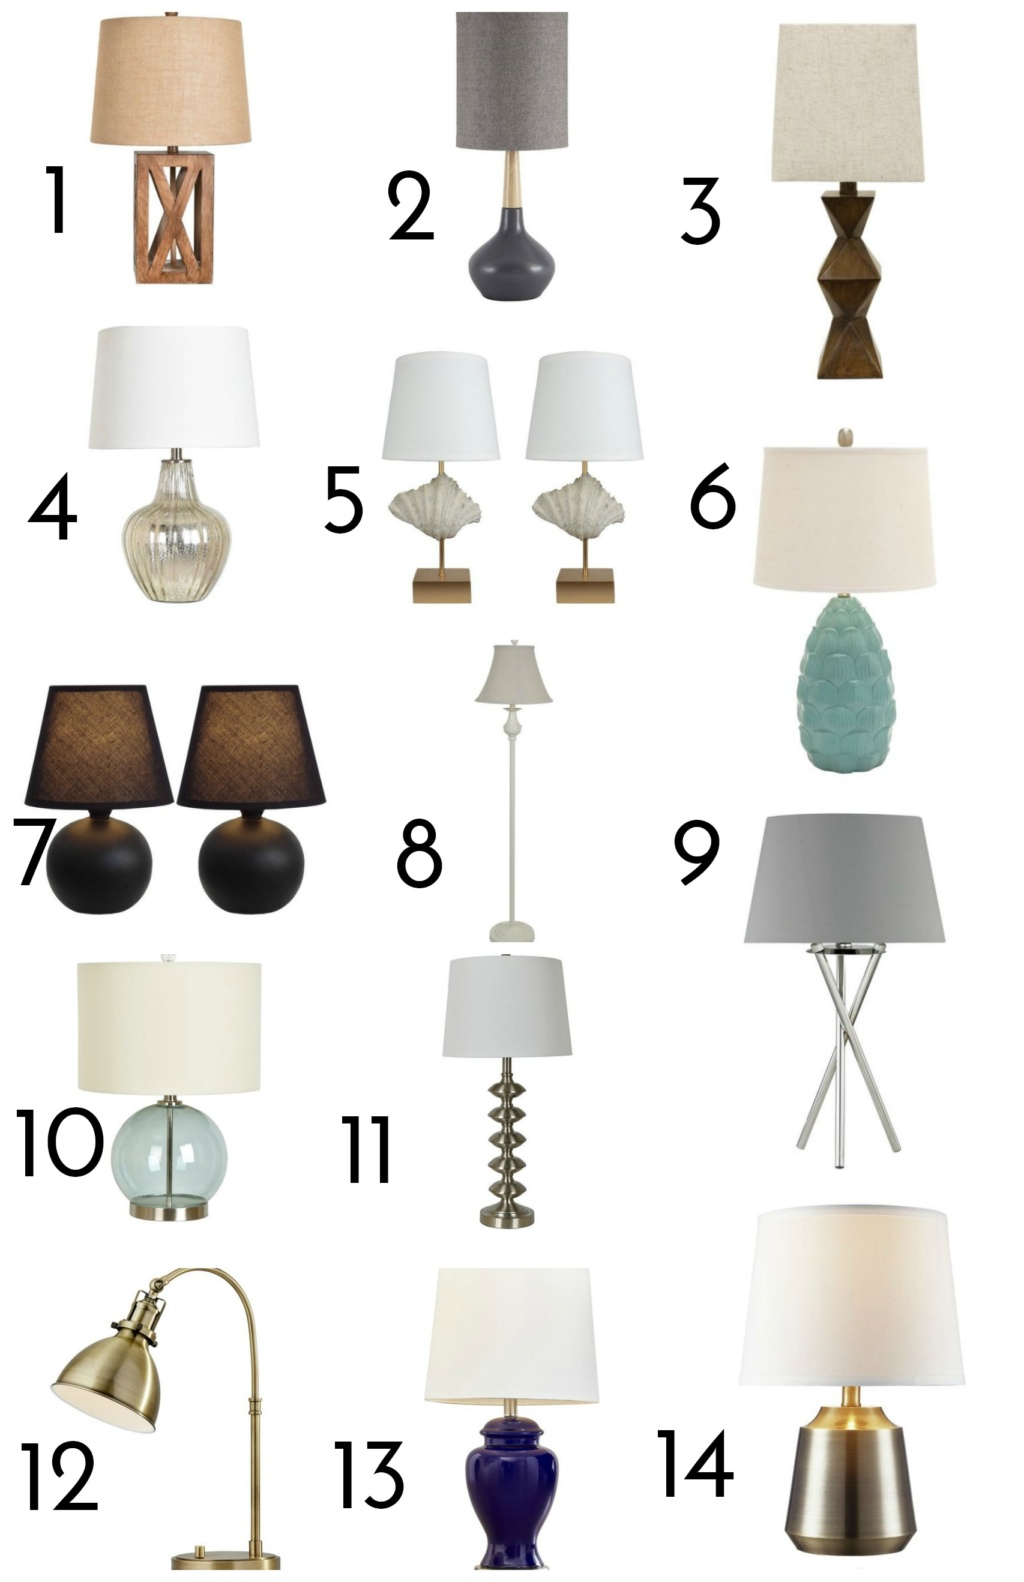 Superior 1 U2013 Camilla Table Lamps U2013 $49.99 | 2 U2013 Admiral Cove Set Of 2 U2013 $81.99 | 3 U2013  Chambray Stacked Diamond U2013 $46.99 | 4 U2013 Glass U0026 Metal U2013 $42.99 | 5 U2013 Shell  Set ...